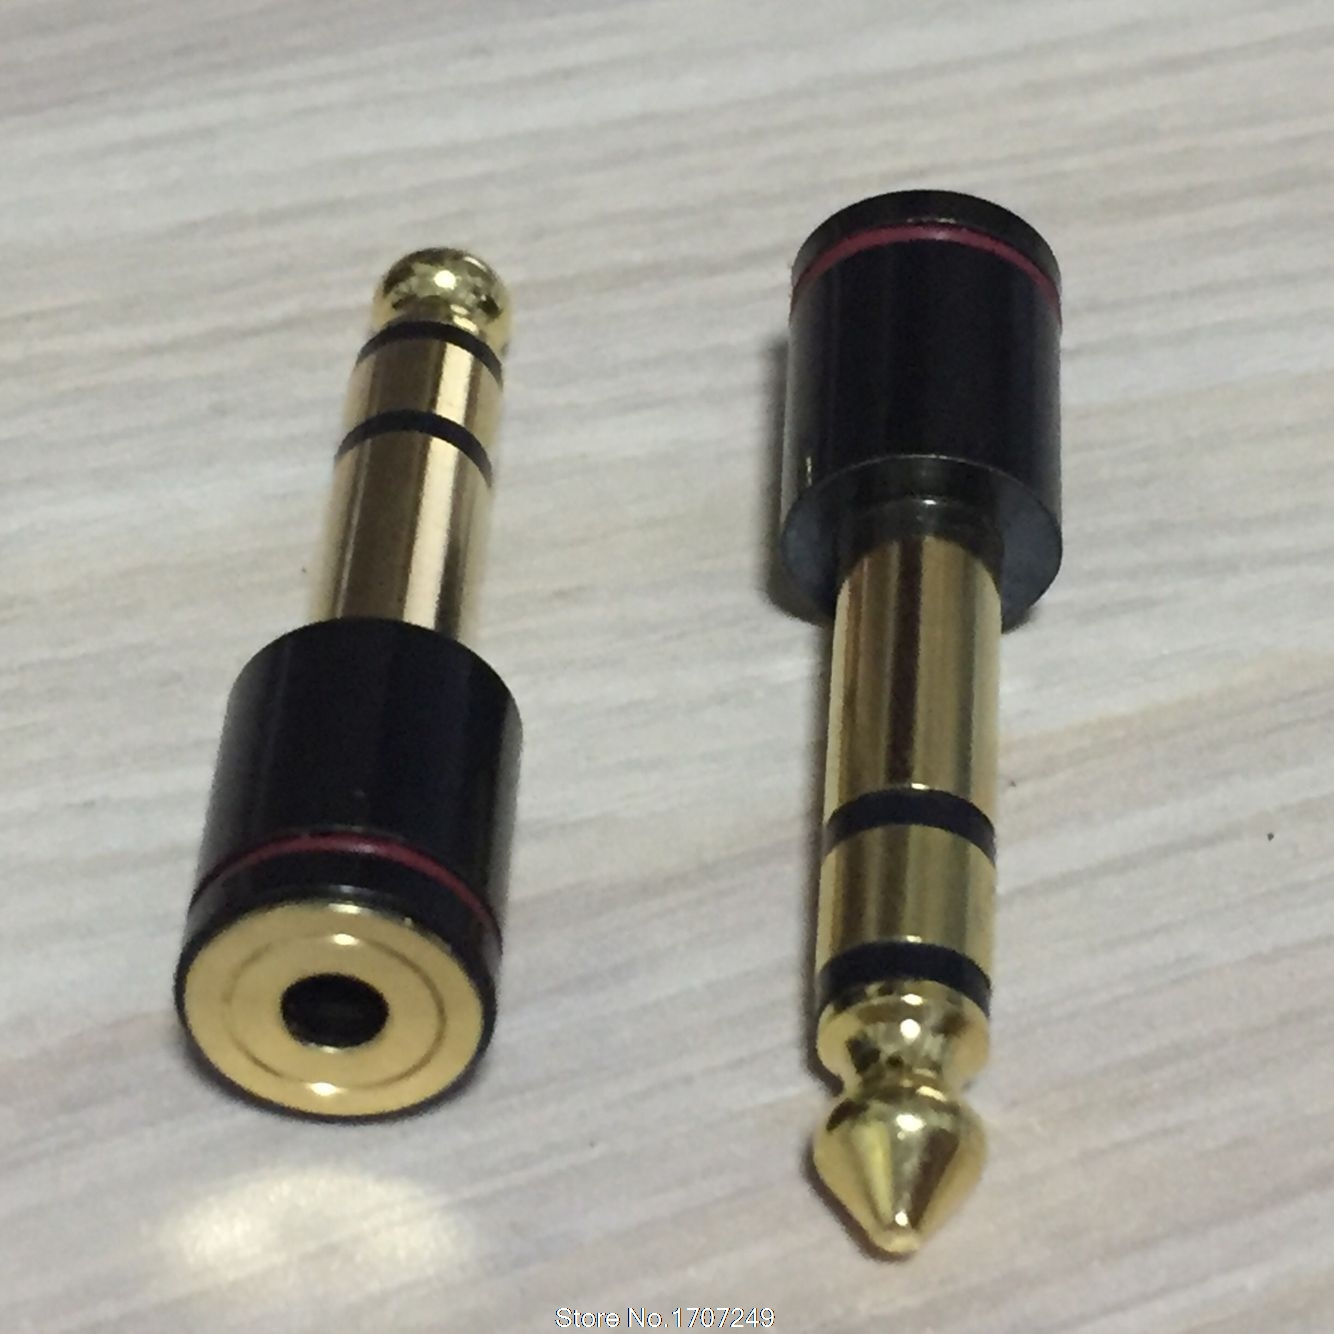 1pcs 6.35mm Male Plug 6.35mm 1/4Male plug to 3.5mm 1/8Female Jack Stereo Headphone Audio Adapter ,TRS 6.5 to 3.5 converter